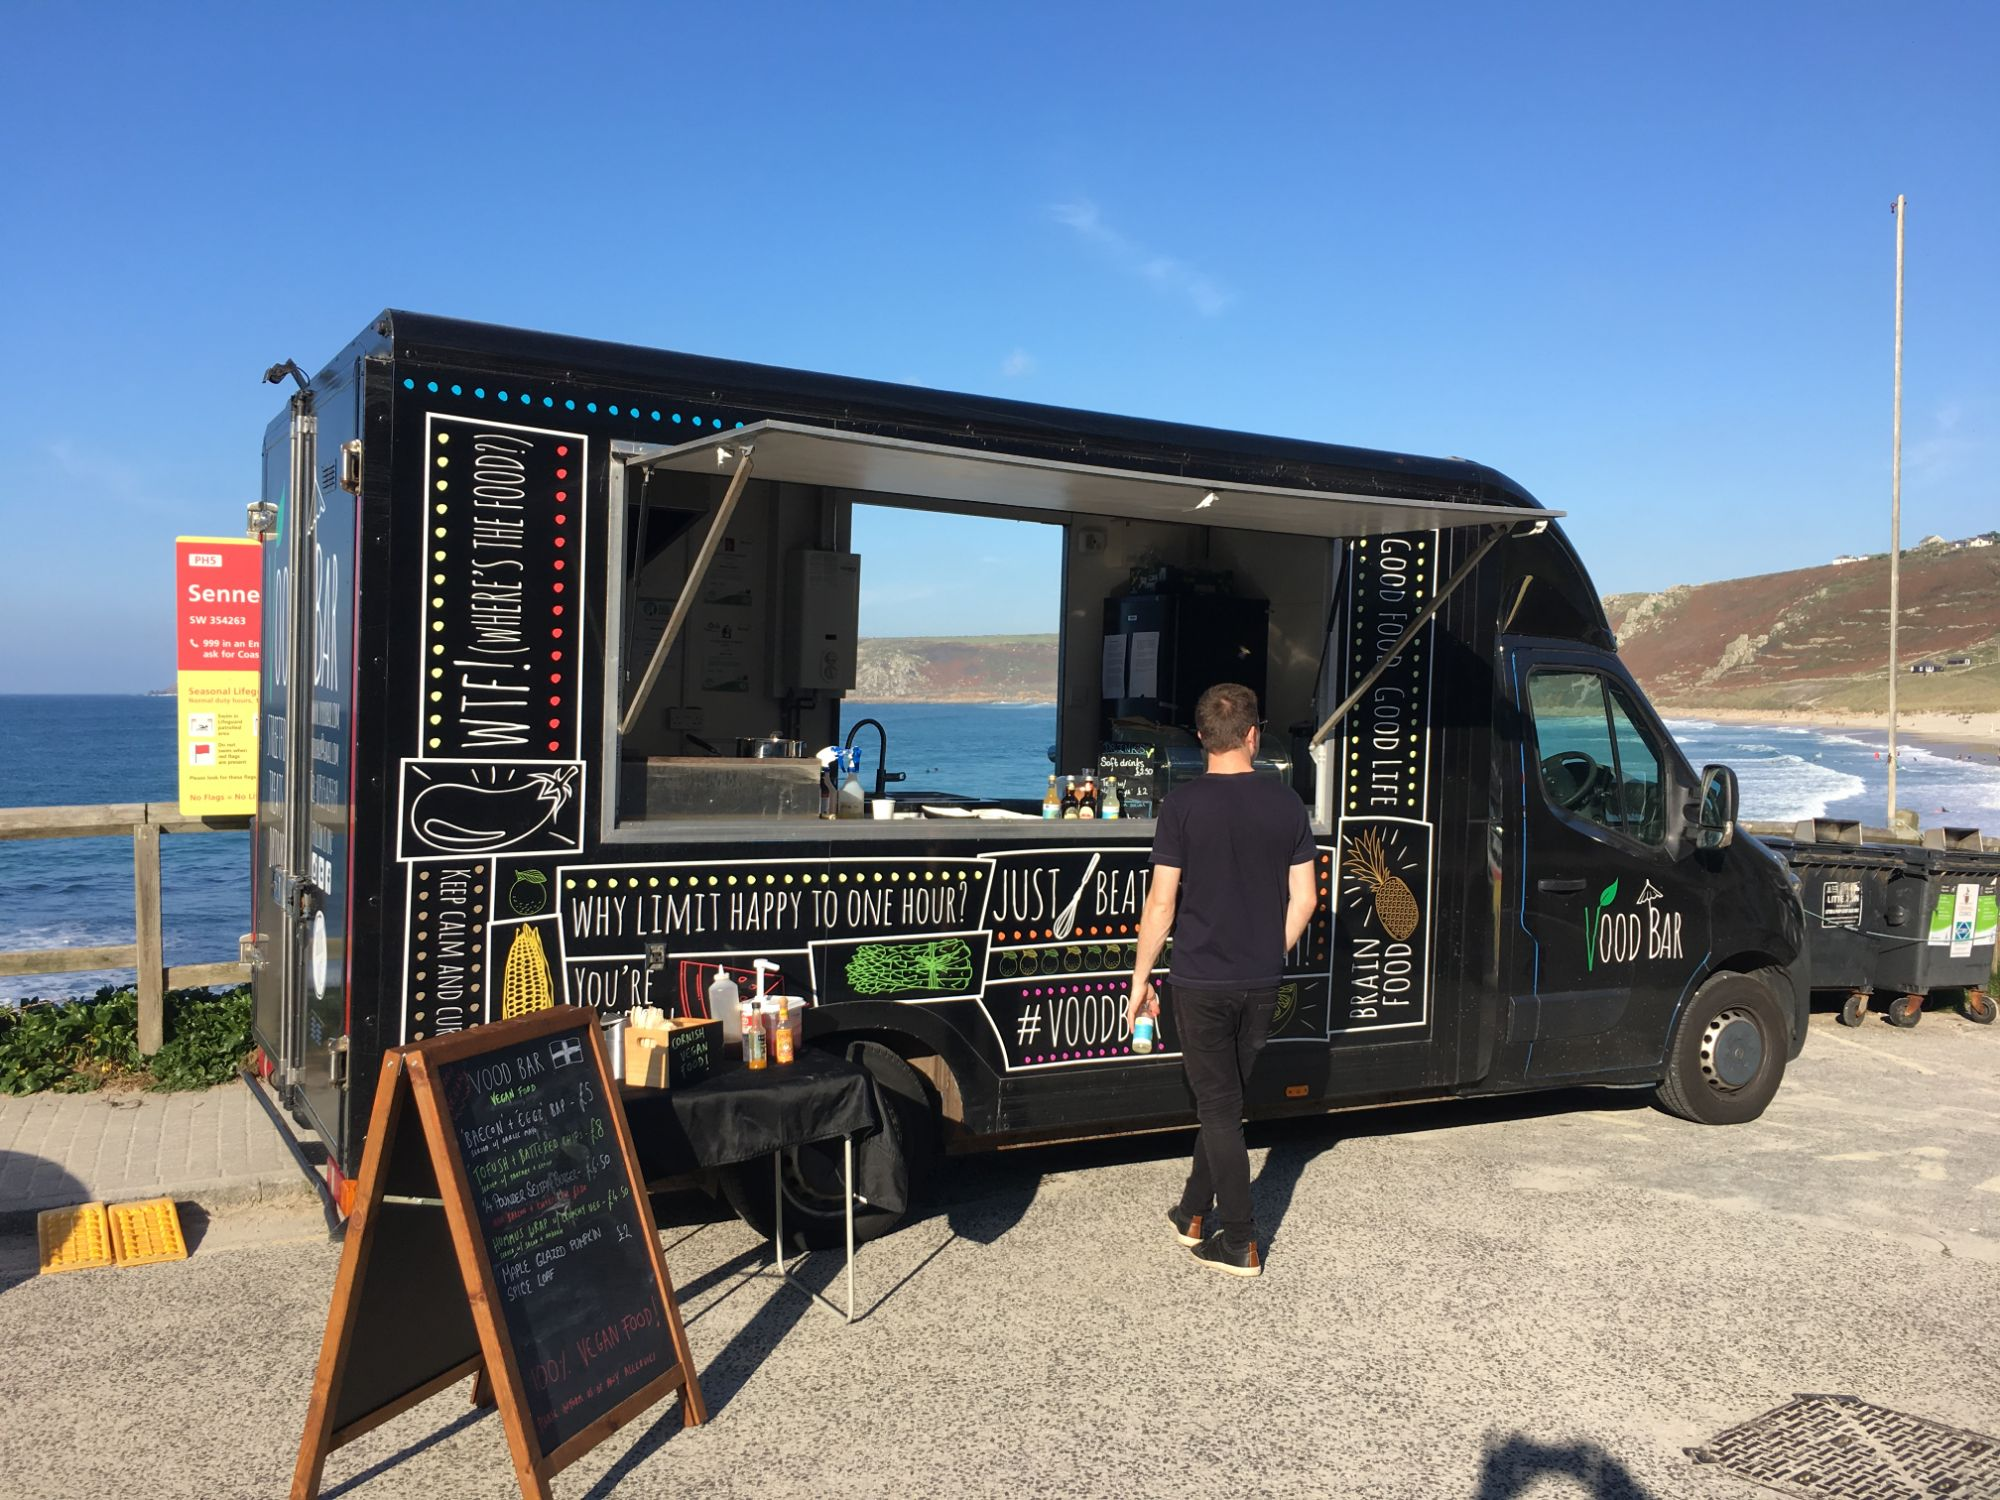 Vegan pop-up van sennen cove